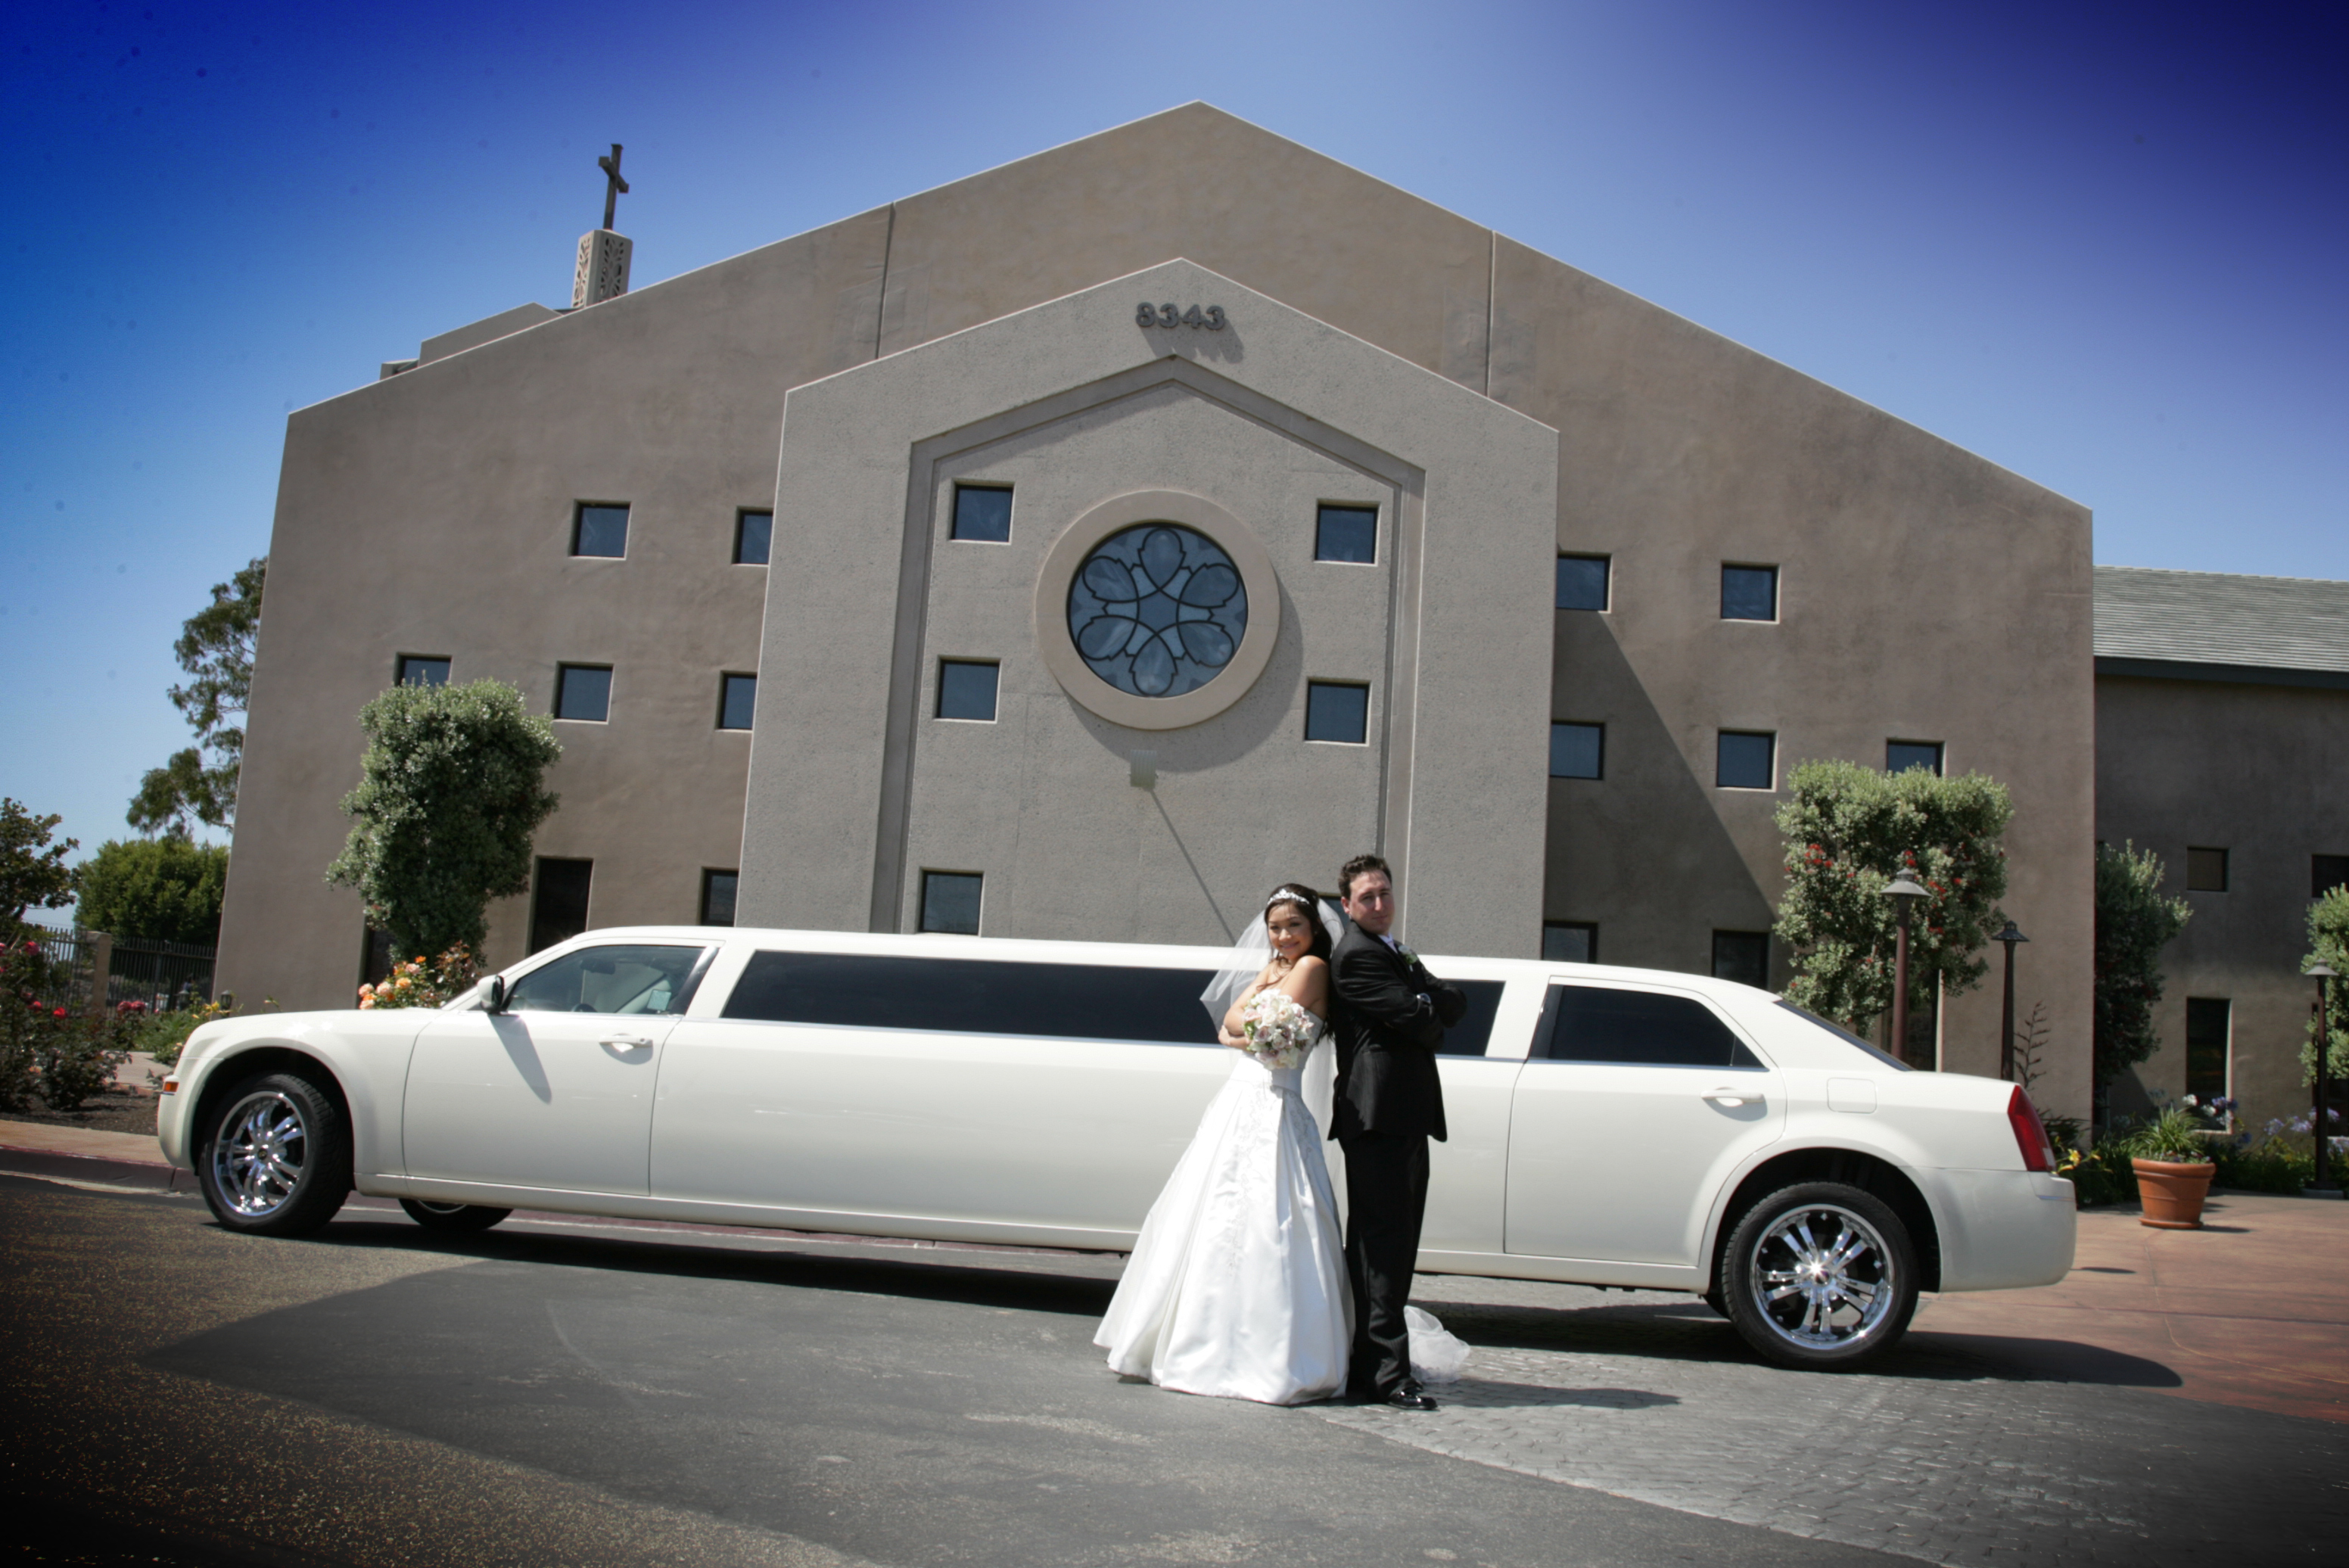 Ceremony, Flowers & Decor, Limousine